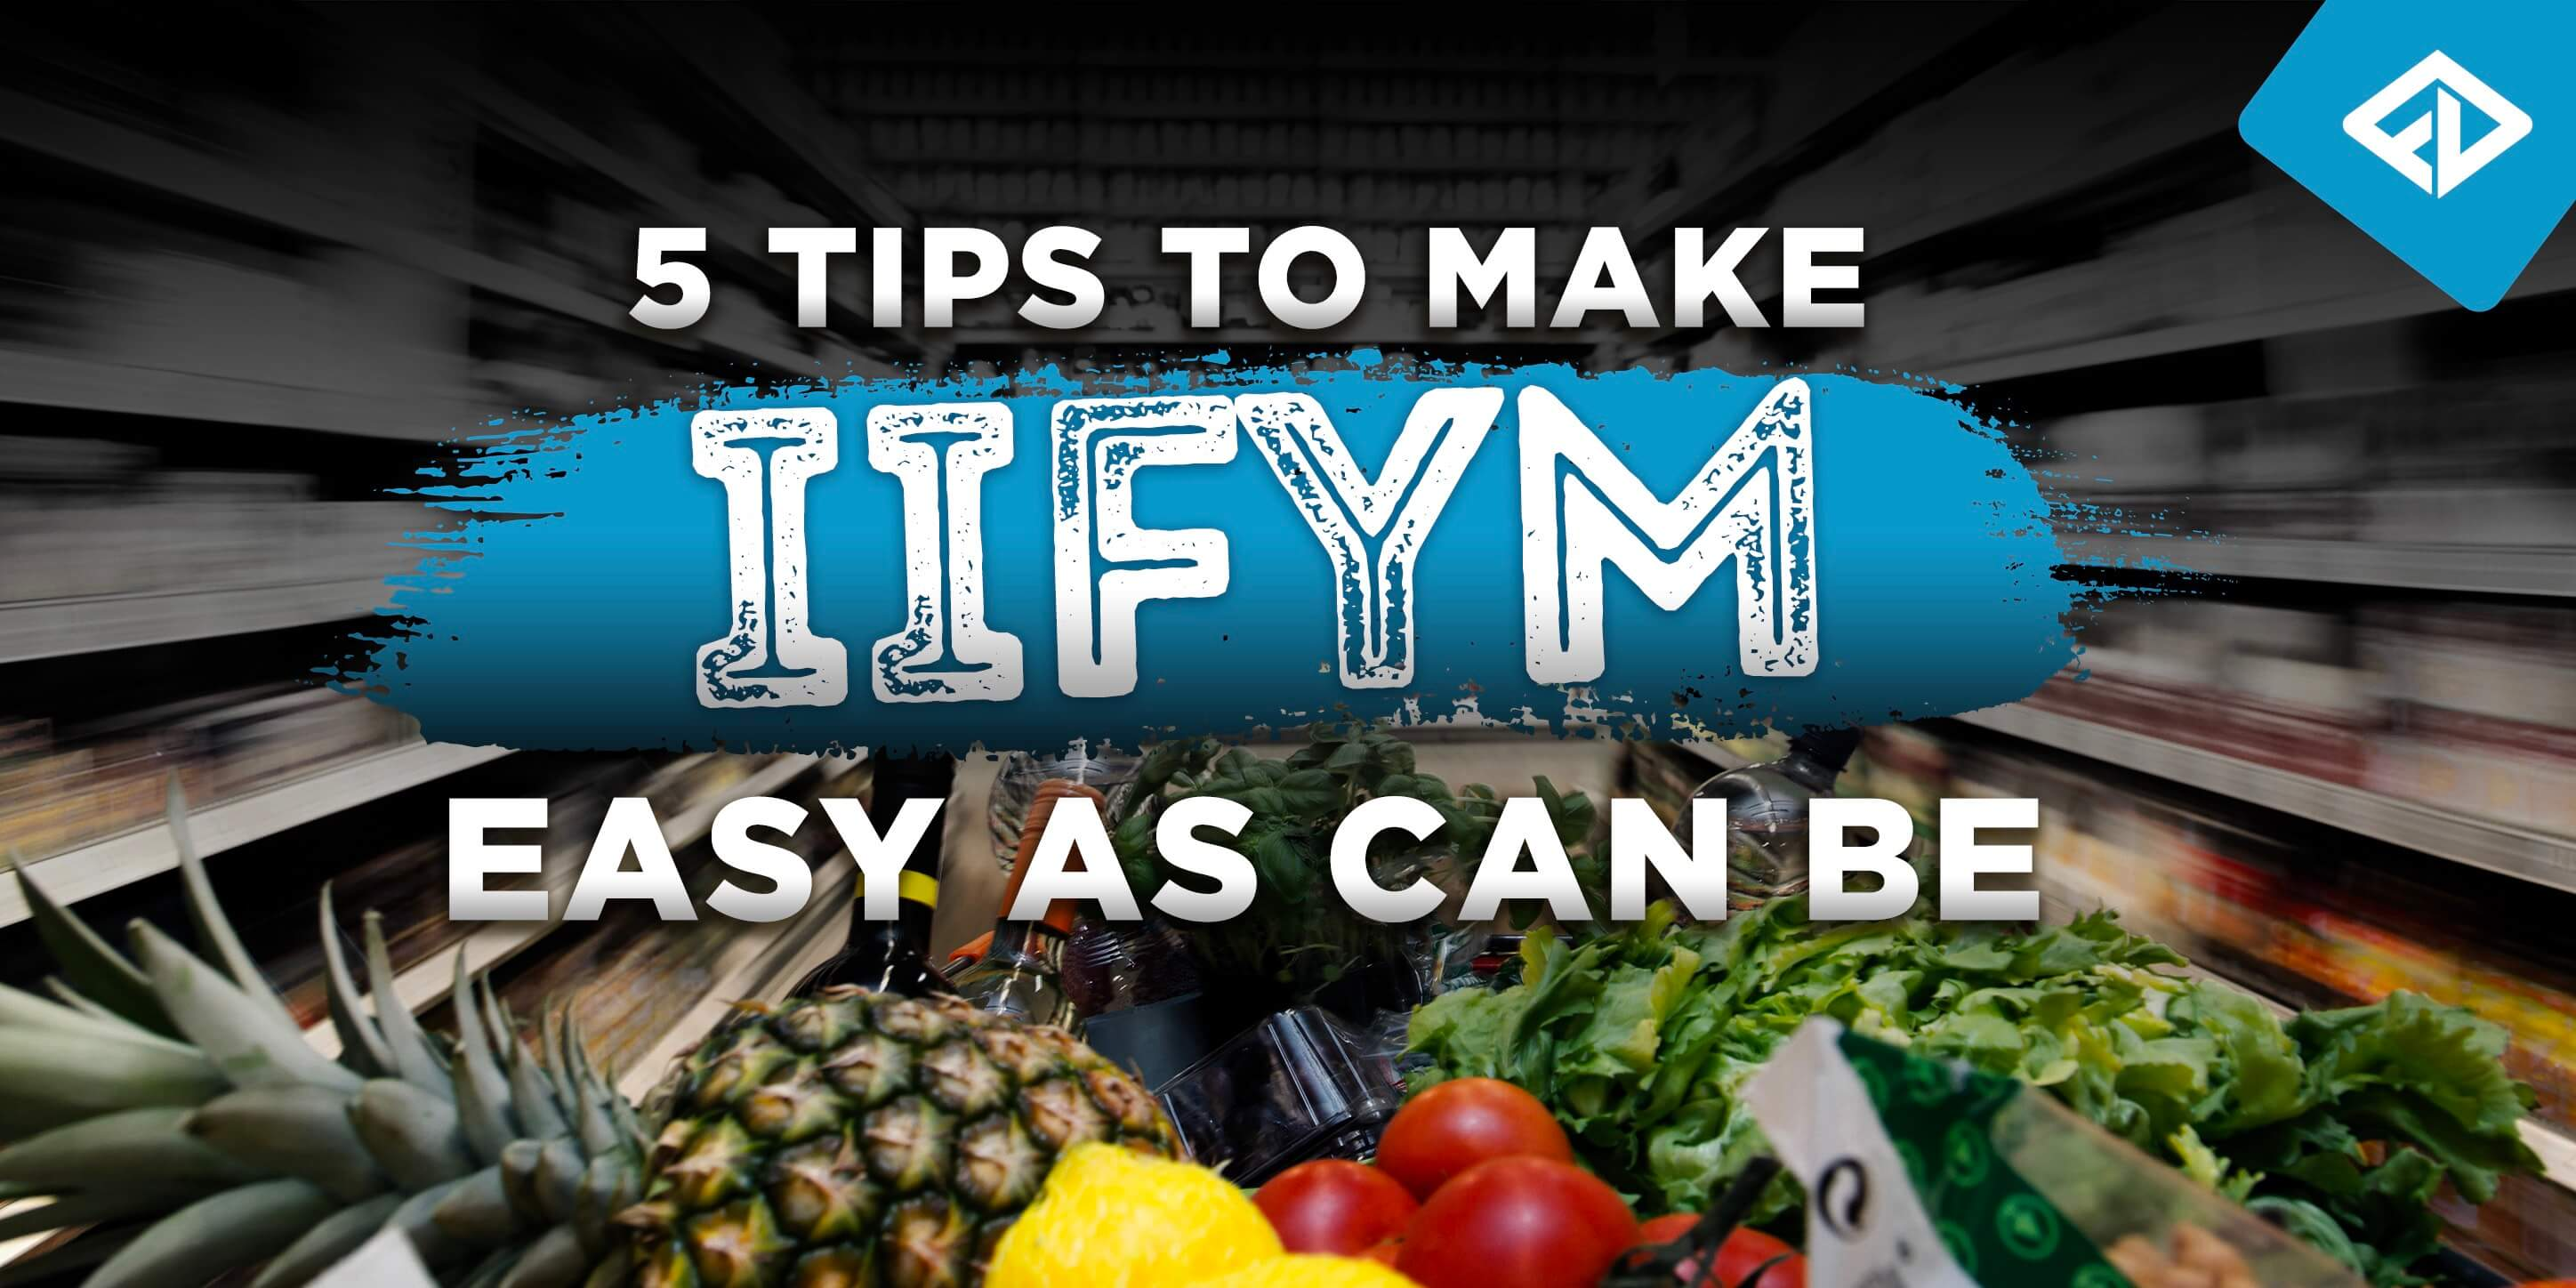 5 Tips To Make IIFYM As Easy As Can Be